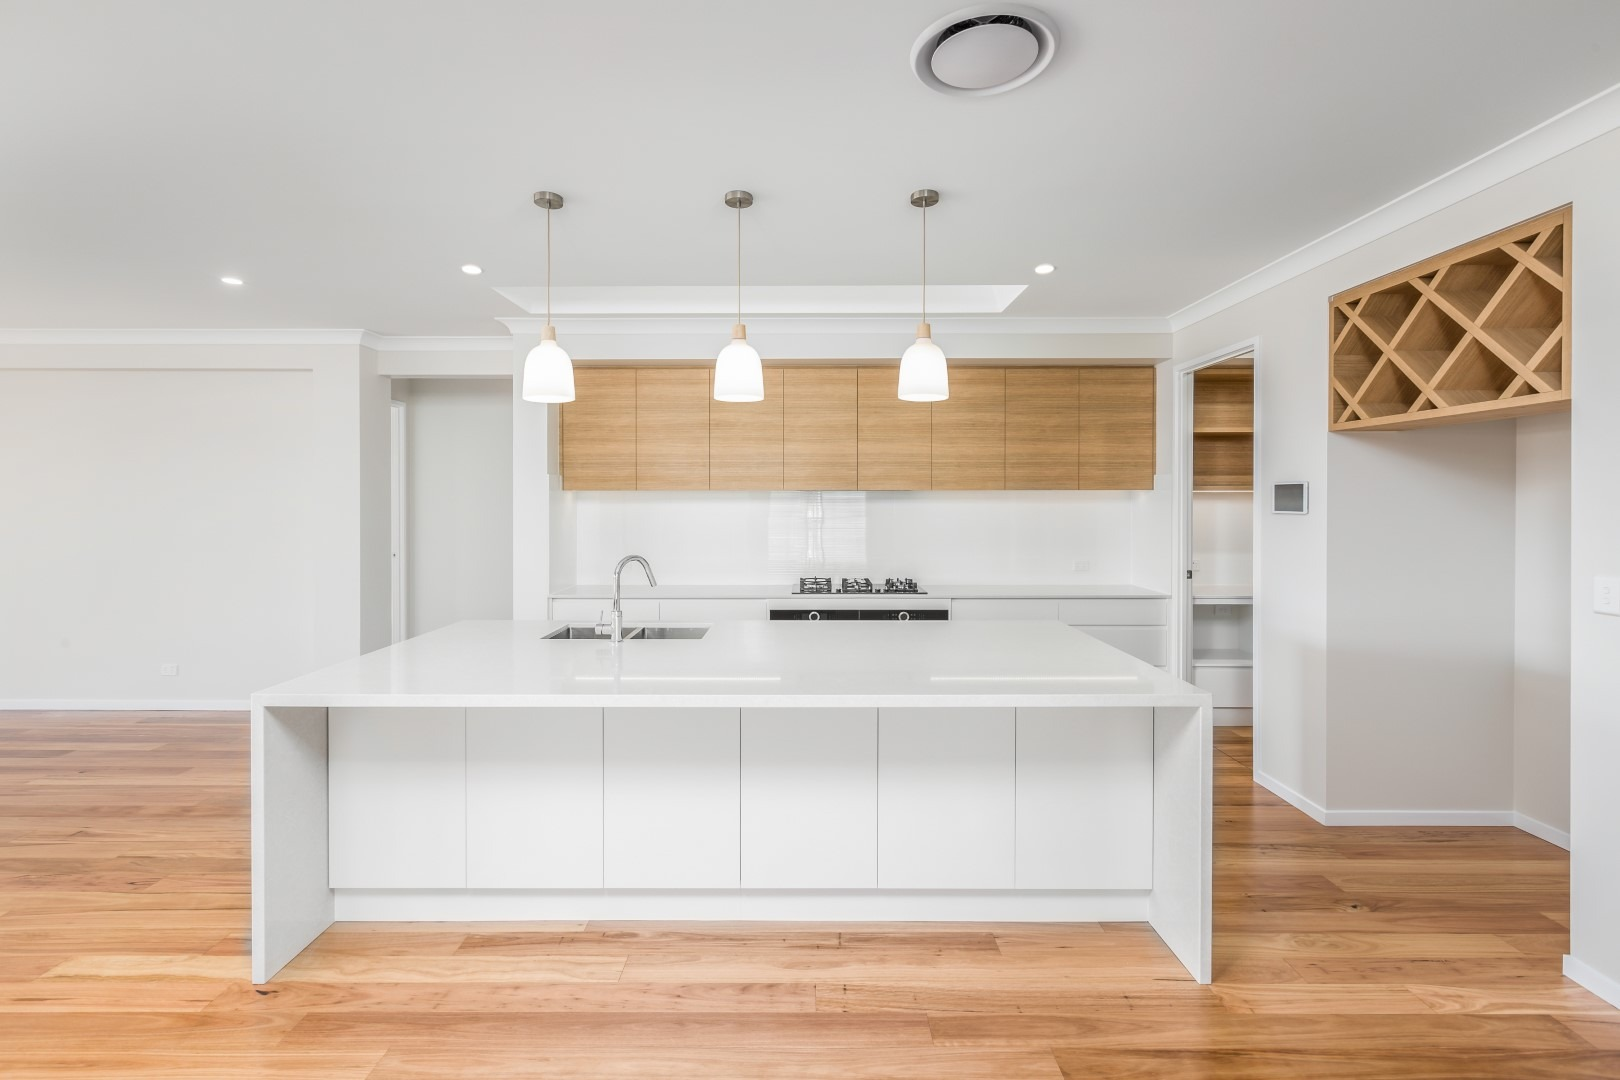 Opting for custom kitchen cabinetry